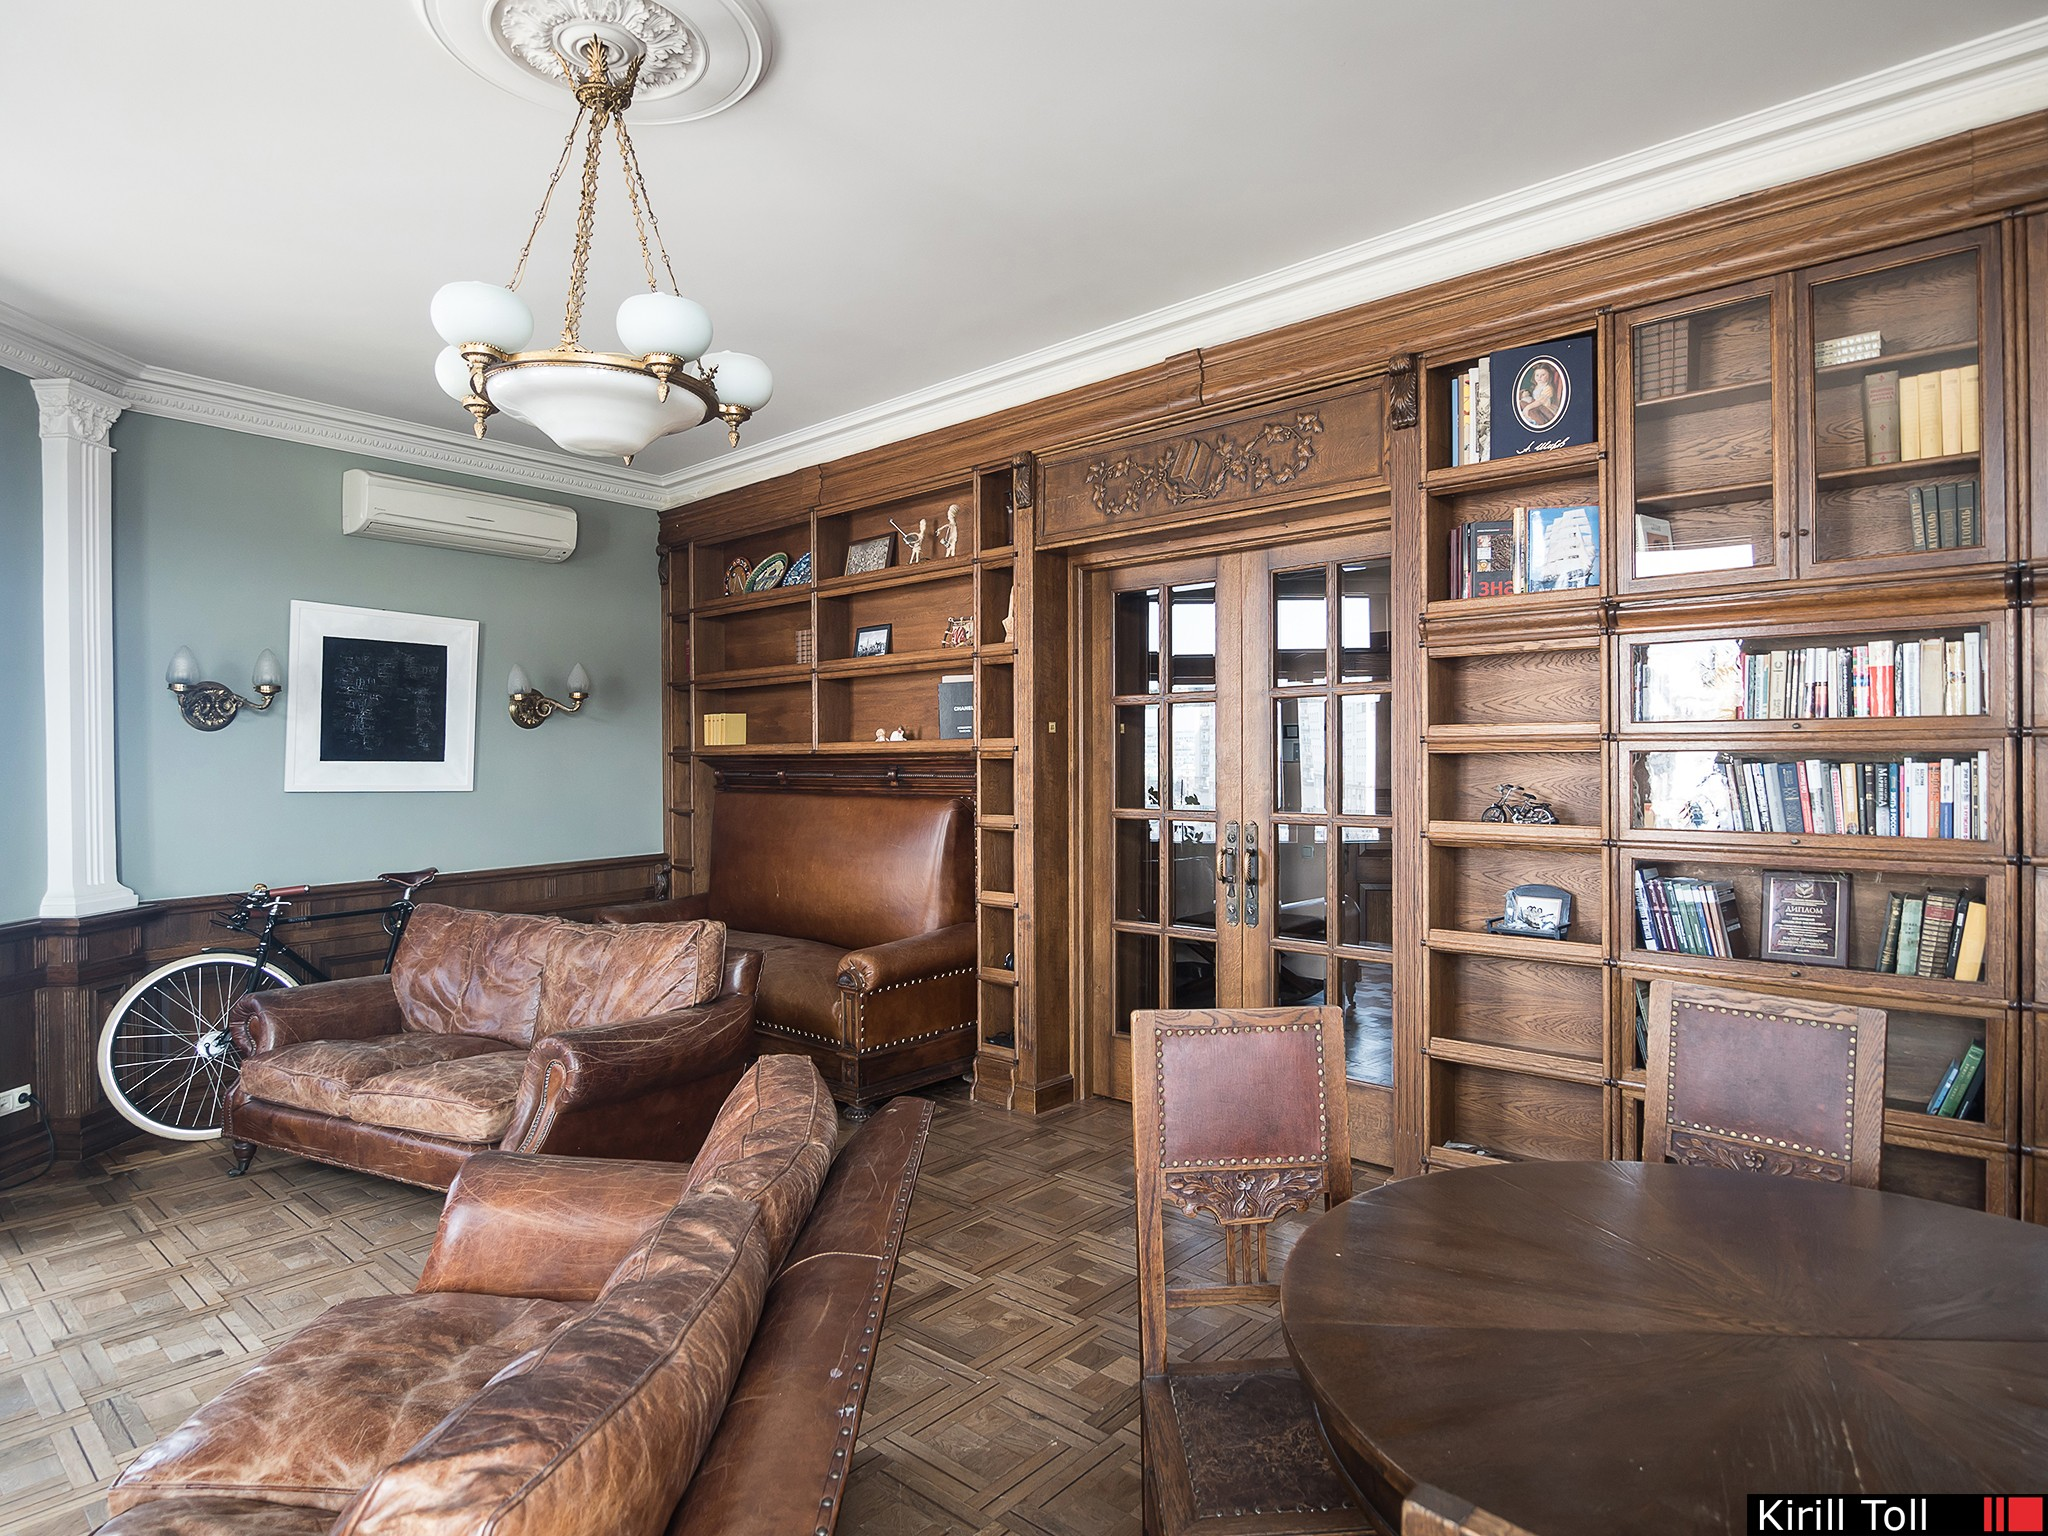 Professional real estate photography for sale Photos of an apartment inMoscow with a view of the Kremlin